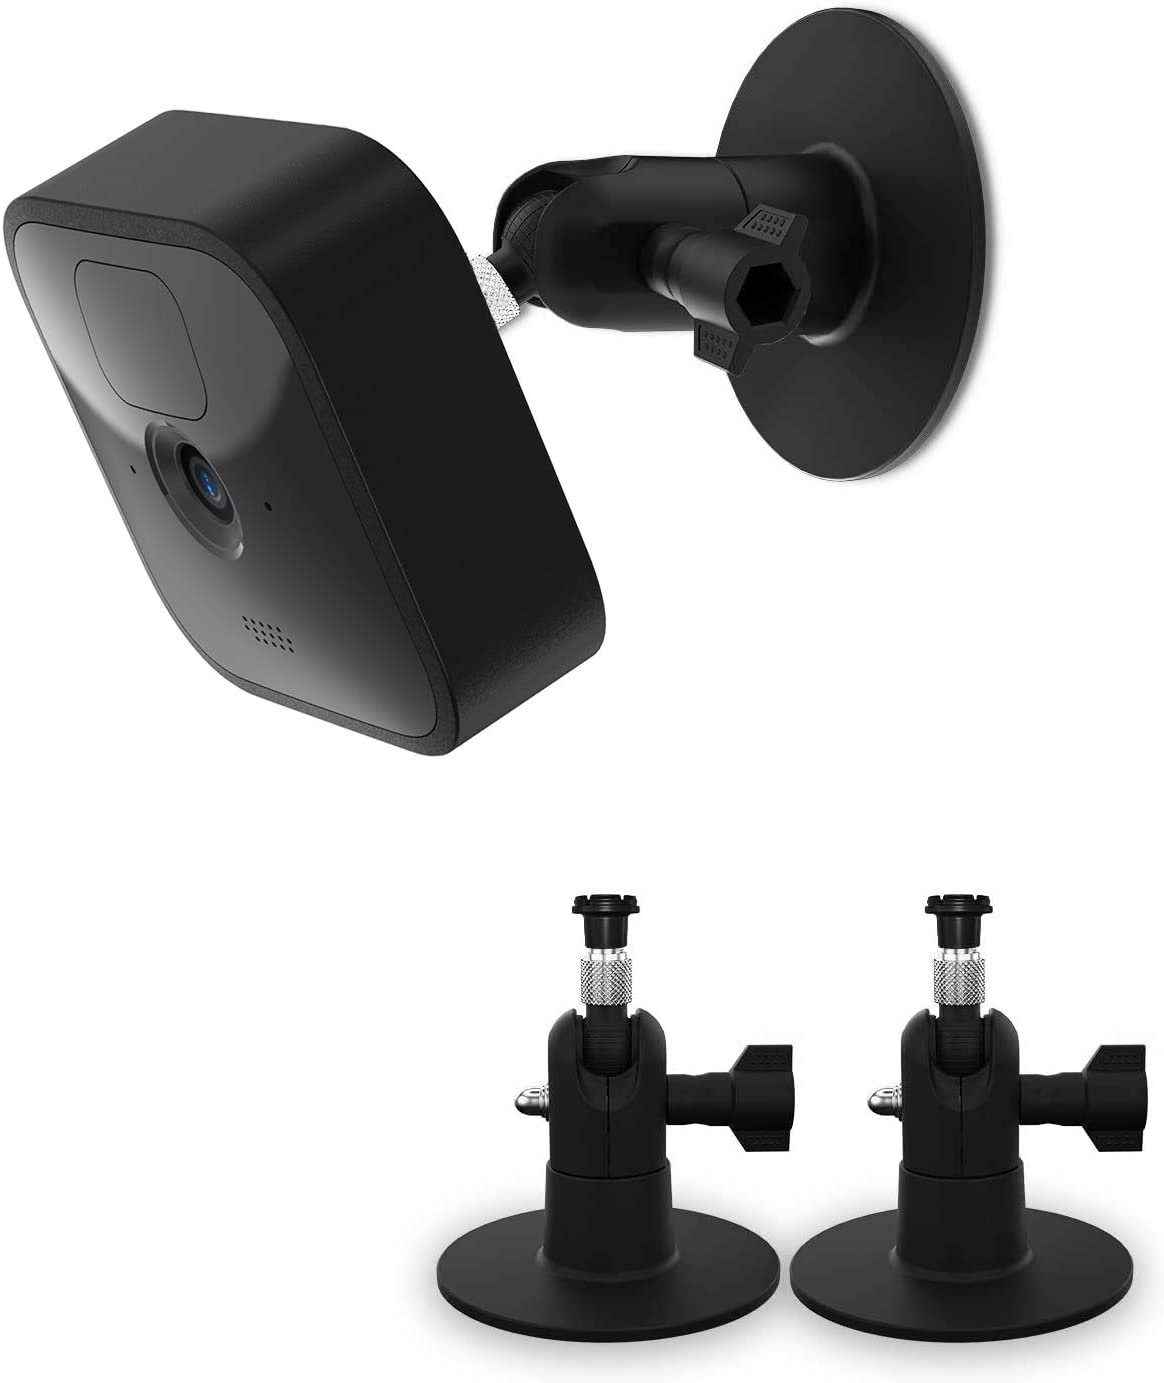 All-New Blink Outdoor Indoor Wall Mount,Wall Mount Kit for All-New Blink Outdoor Indoor Camera Without Screws and VHB Stick On - Easy to Install, Adheasive Mount (Black 2Pack)